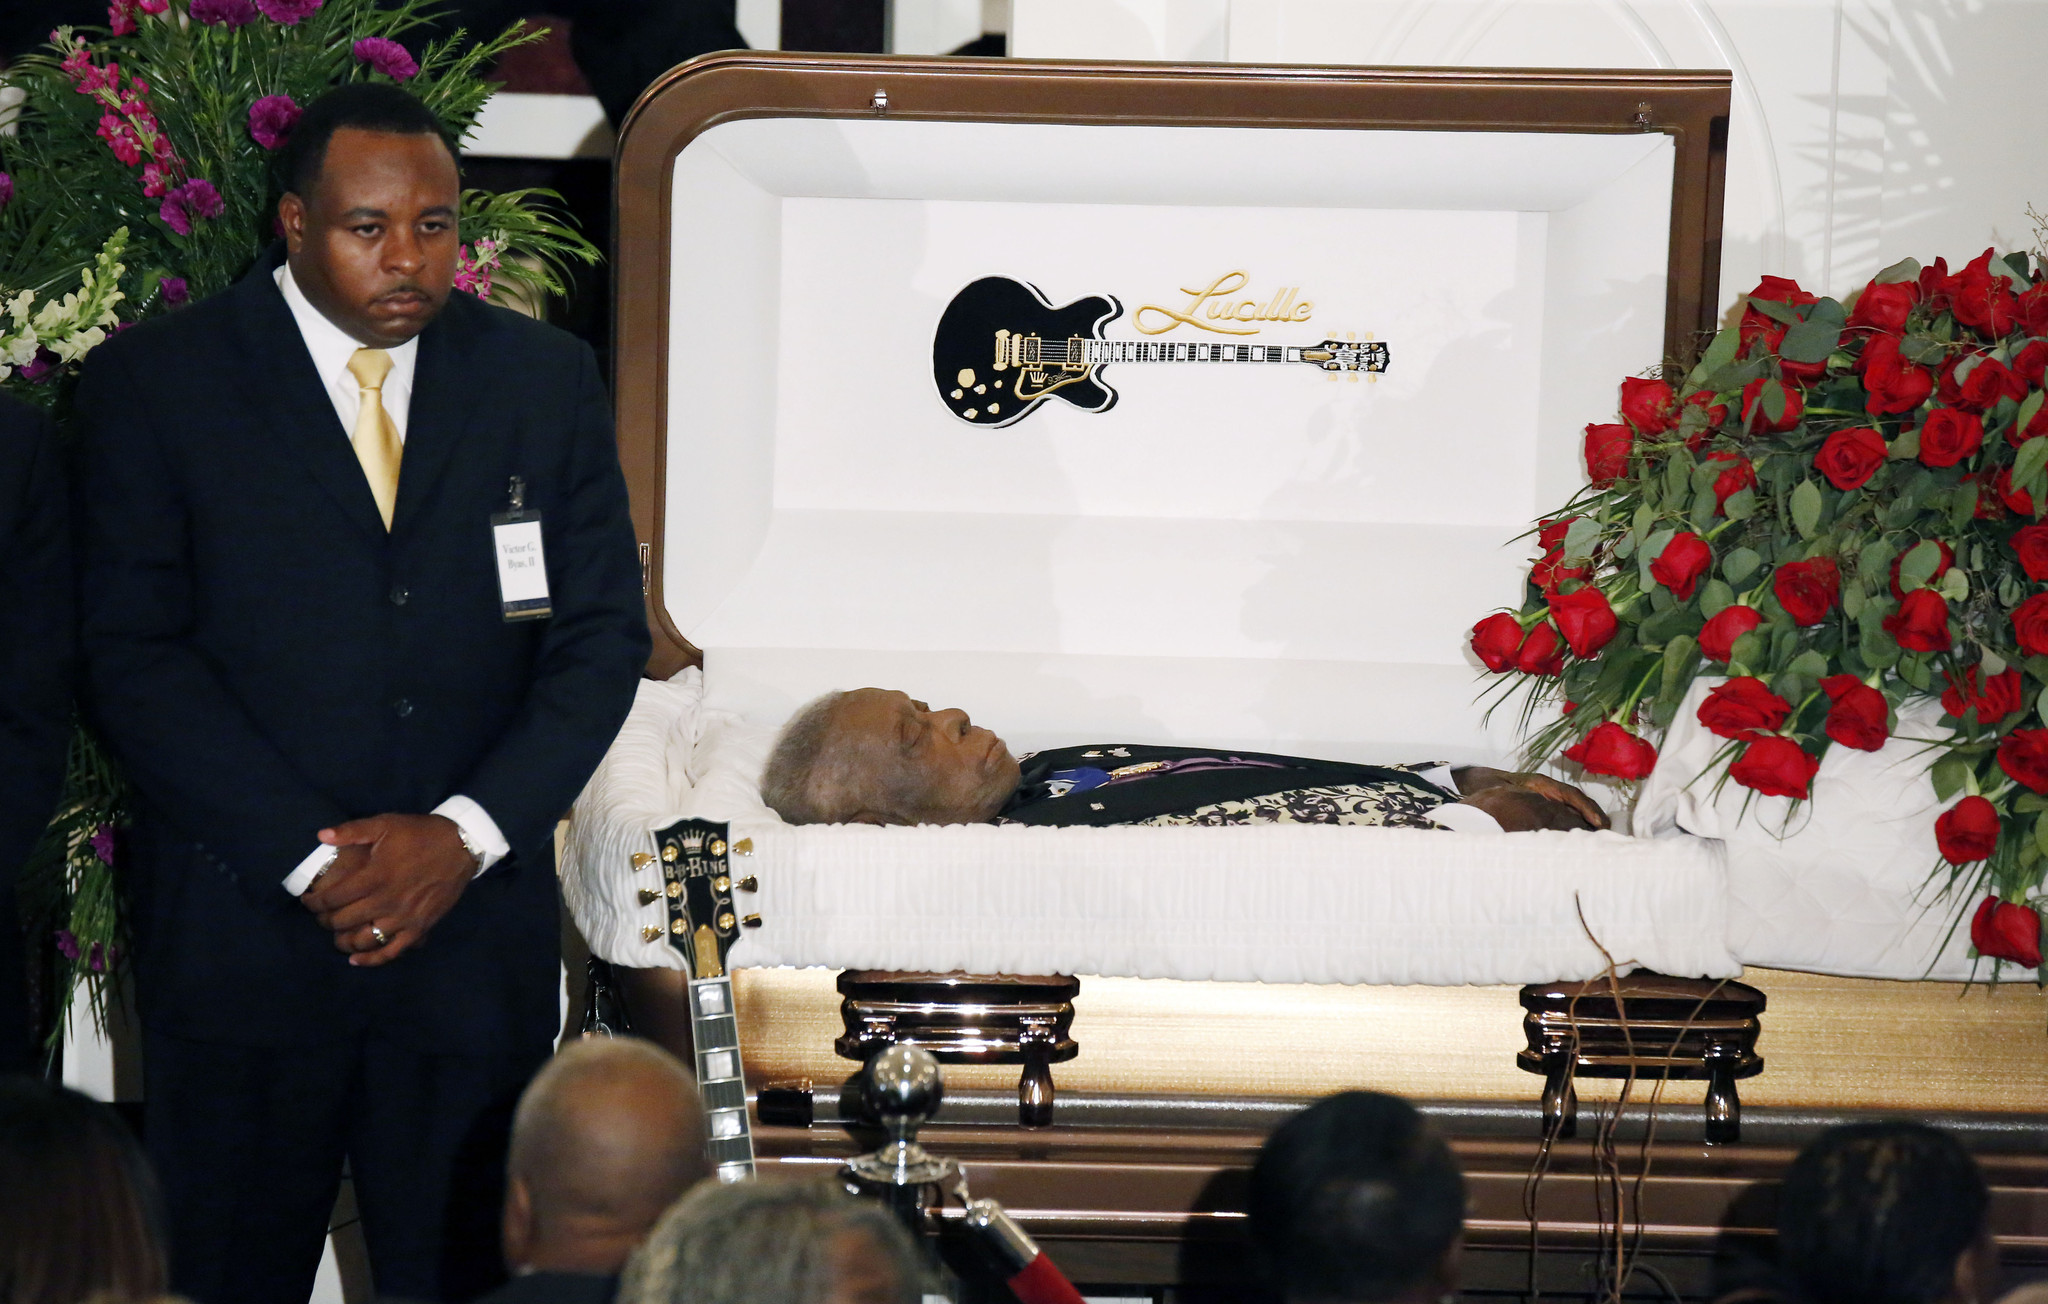 b b king recalled with love humor at mississippi funeral chicago tribune. Black Bedroom Furniture Sets. Home Design Ideas